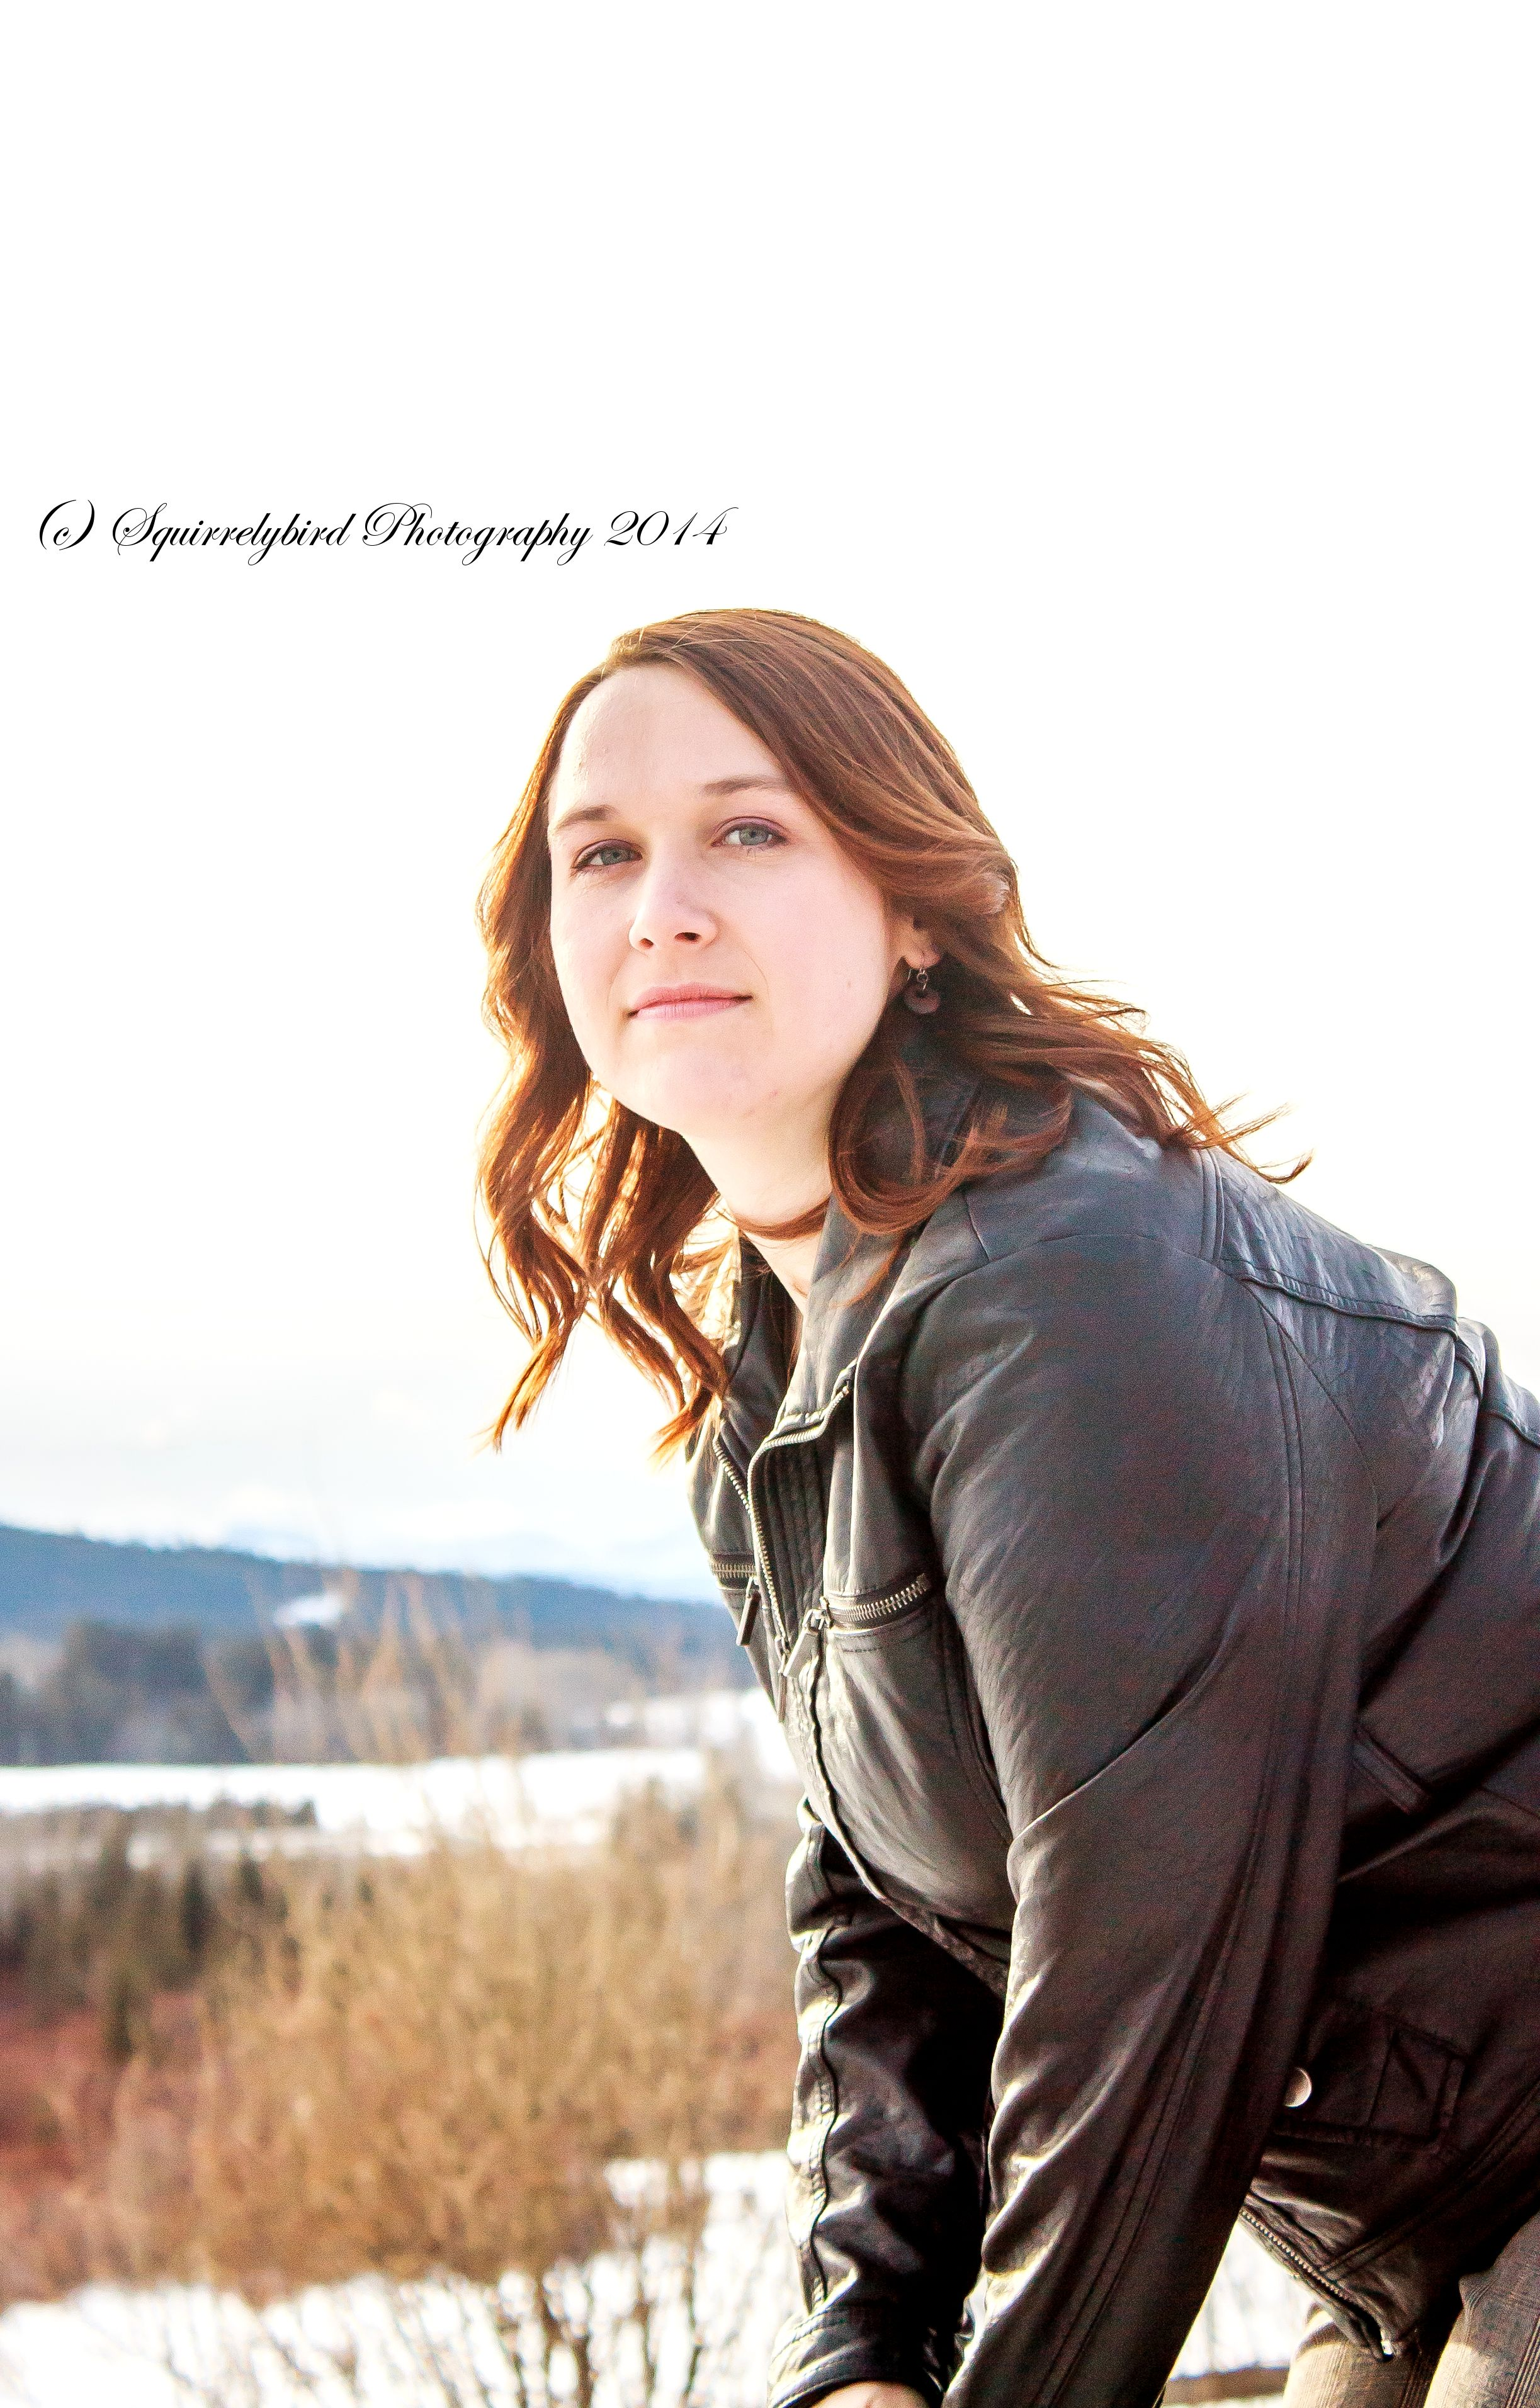 Sara, from my latest mini session!